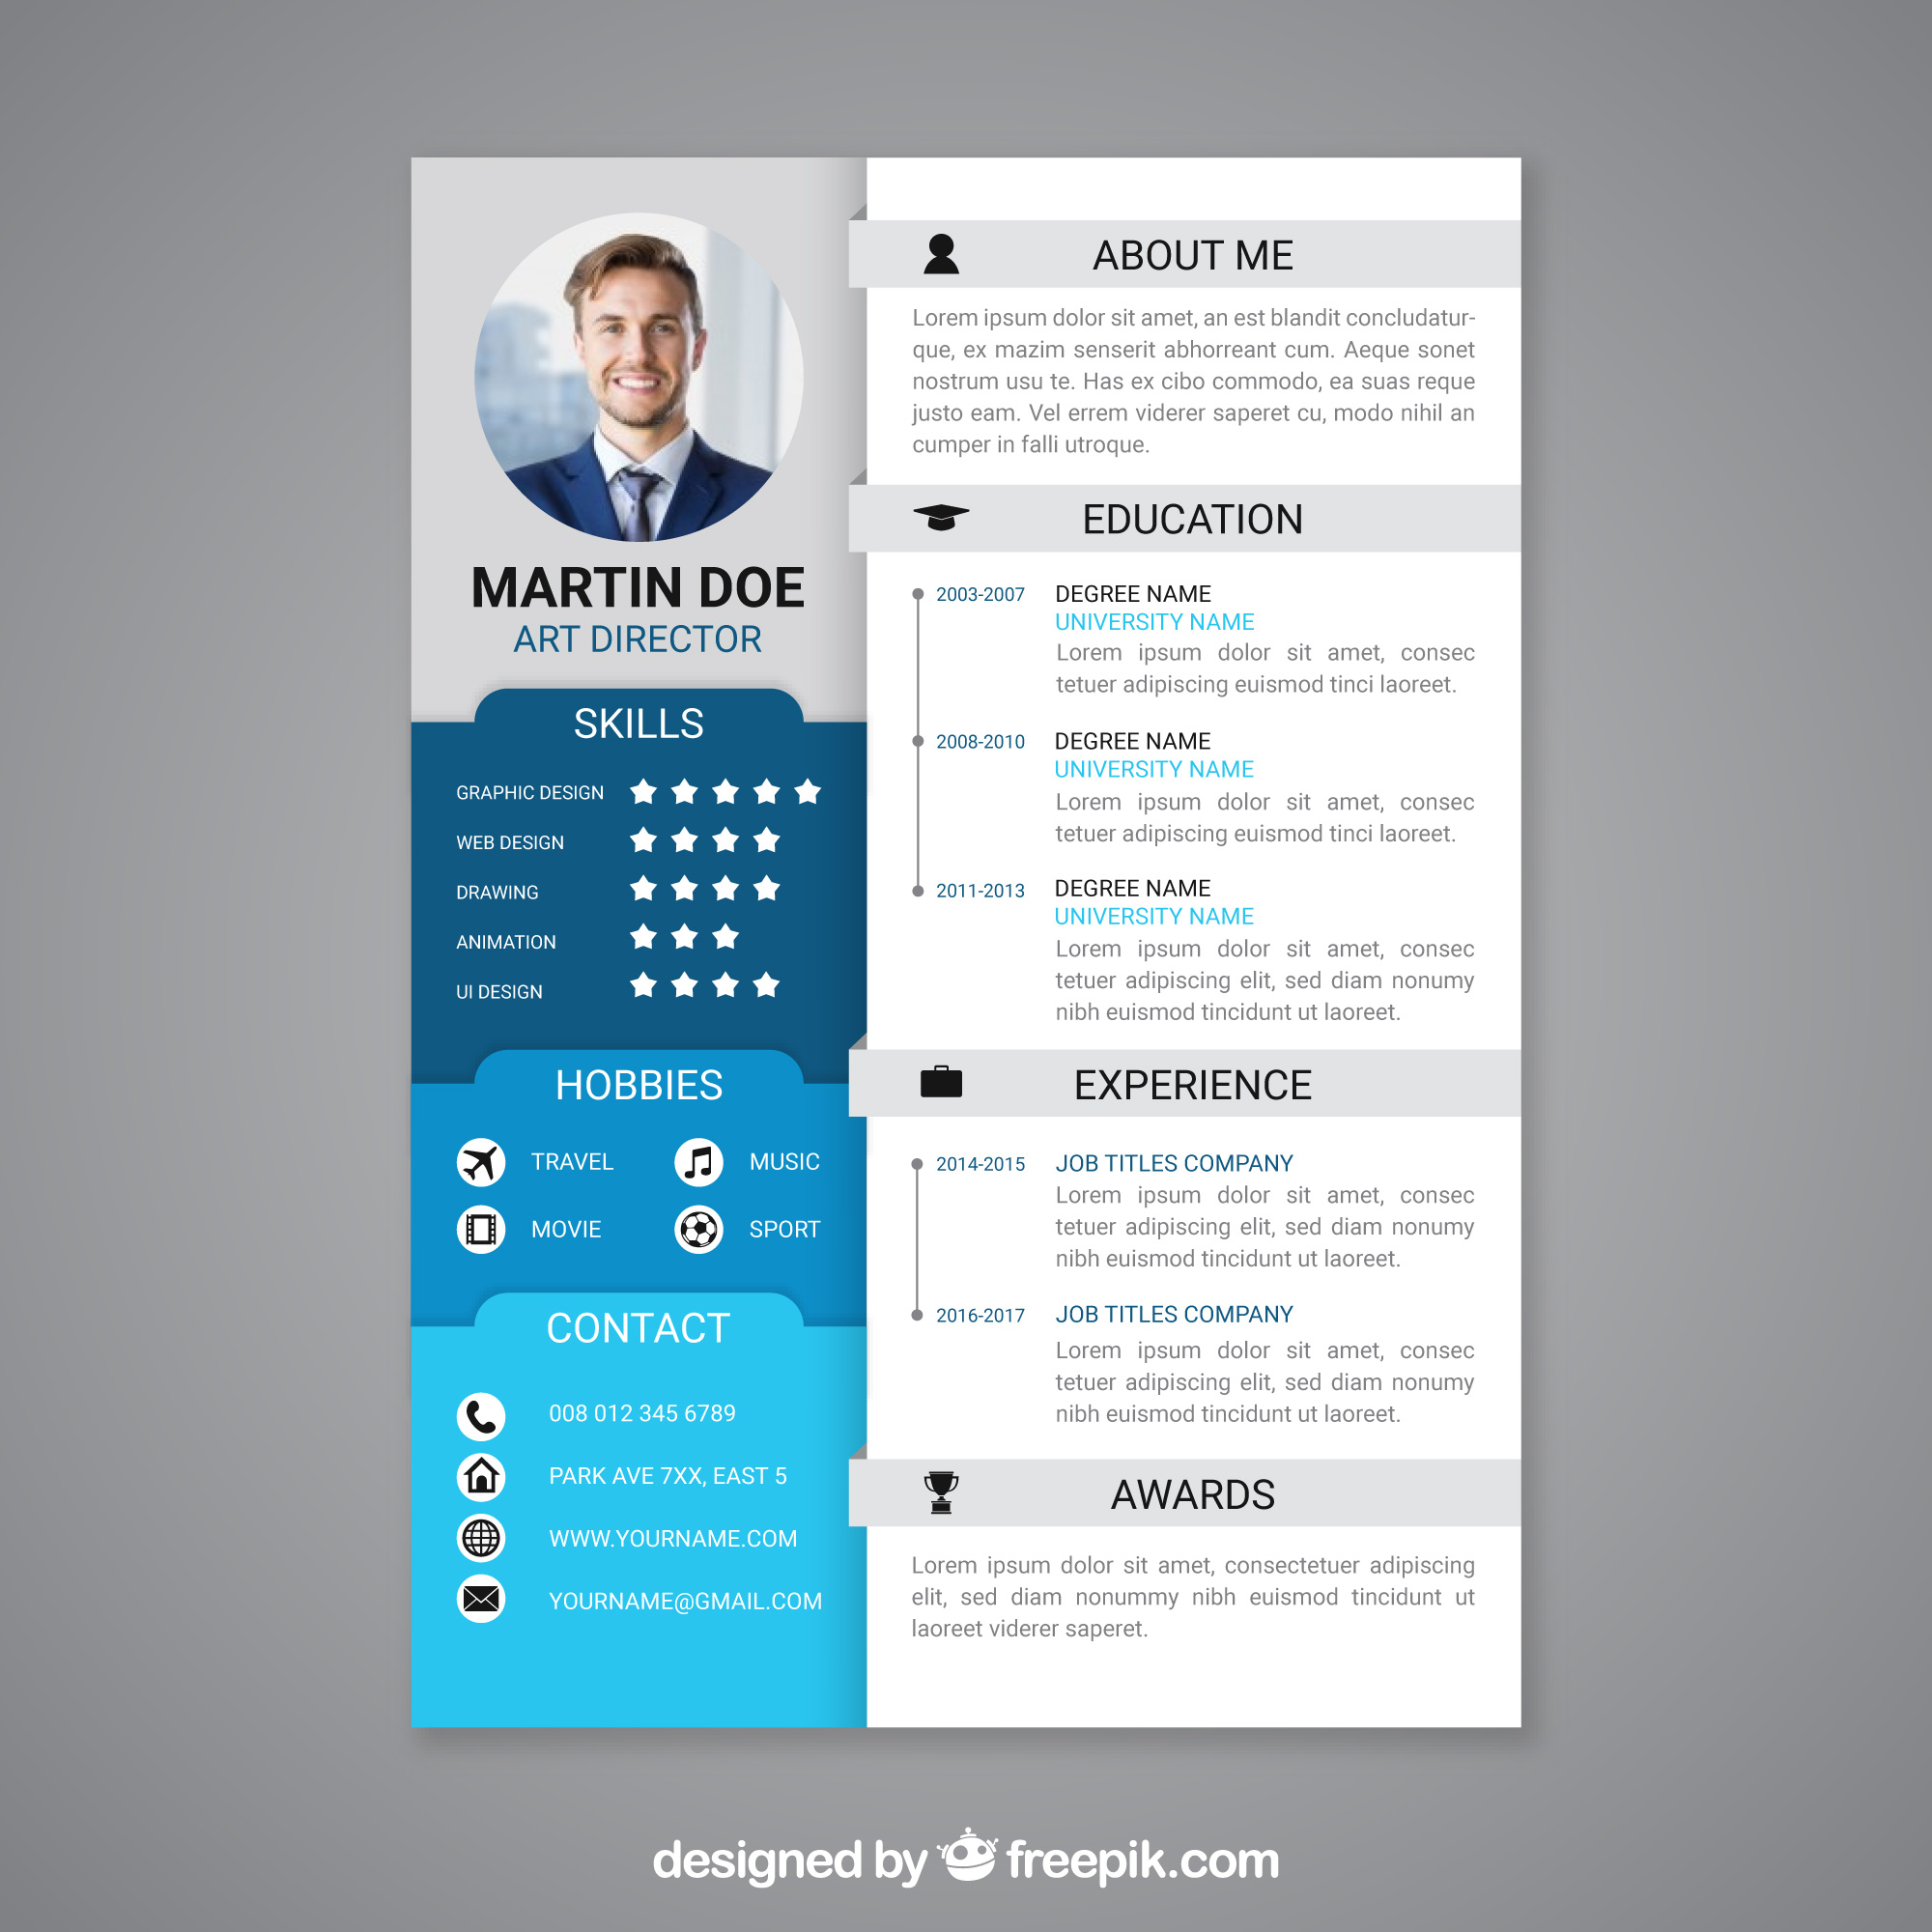 A modern and stylish Cover Letter and Resume